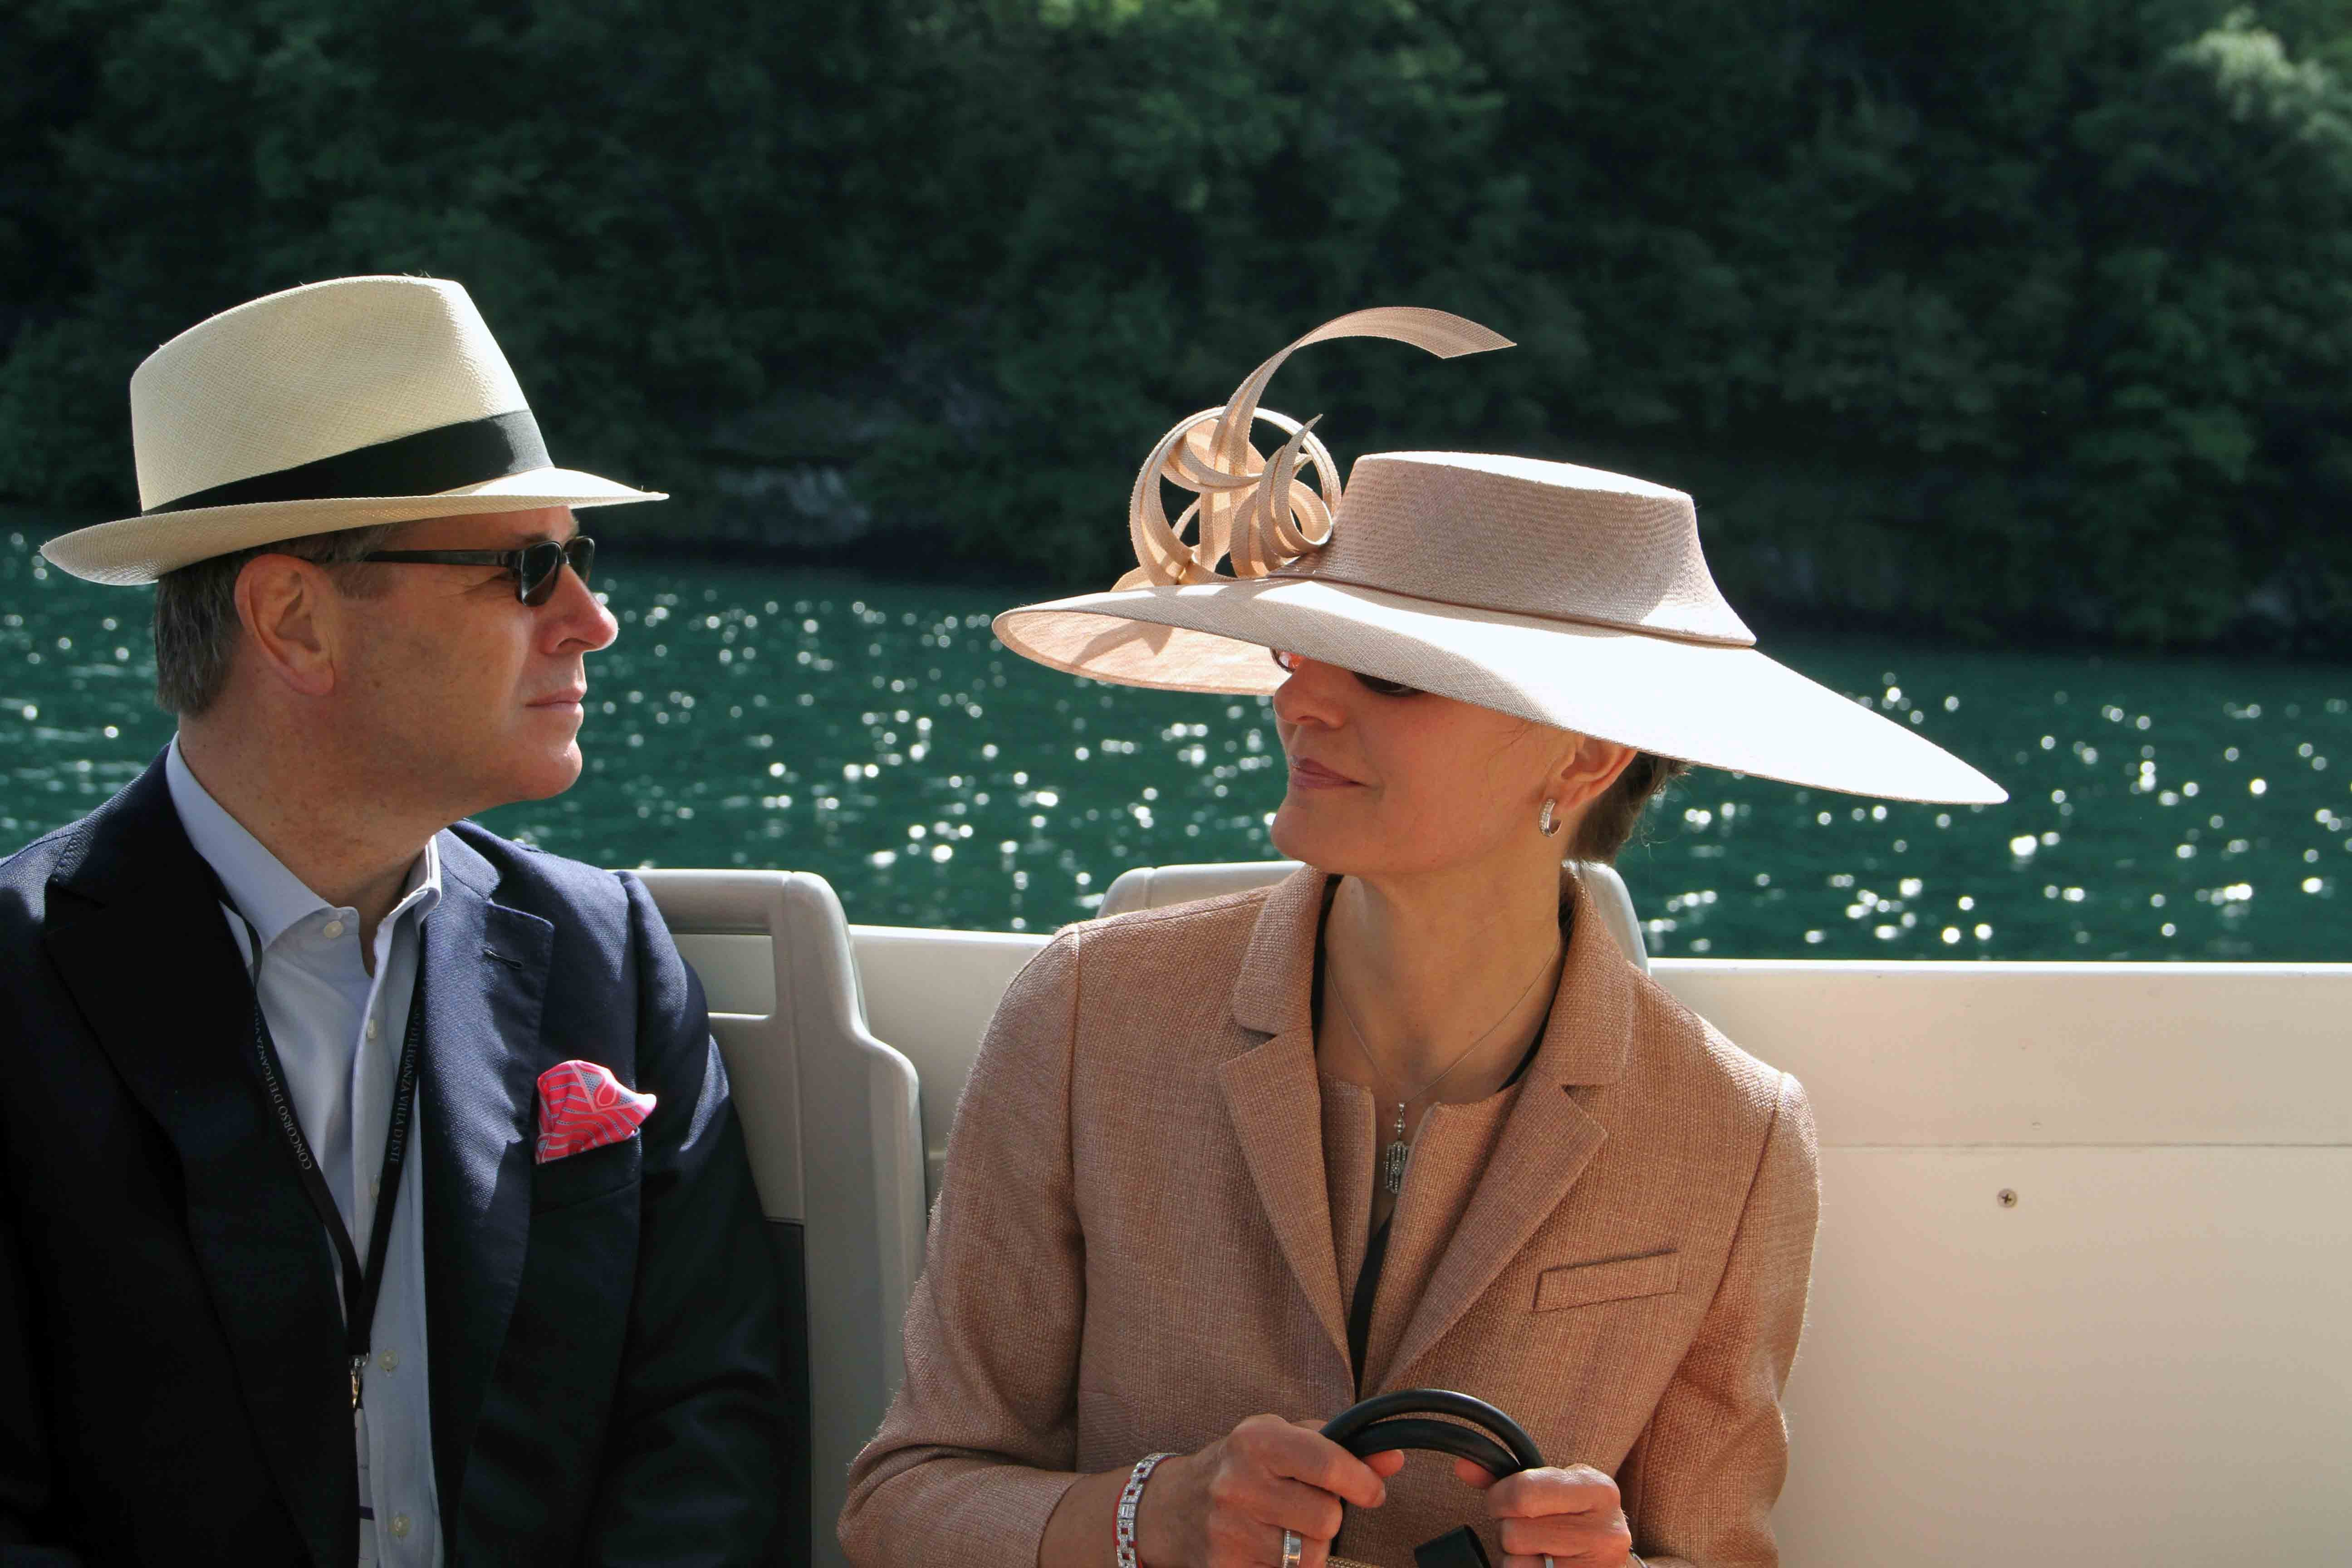 Photo Report: Watch And Car Spotting At The 2016 Concorso d'Eleganza Villa d'Este With A. Lange & Söhne Photo Report: Watch And Car Spotting At The 2016 Concorso d'Eleganza Villa d'Este With A. Lange & Söhne IMG 5090